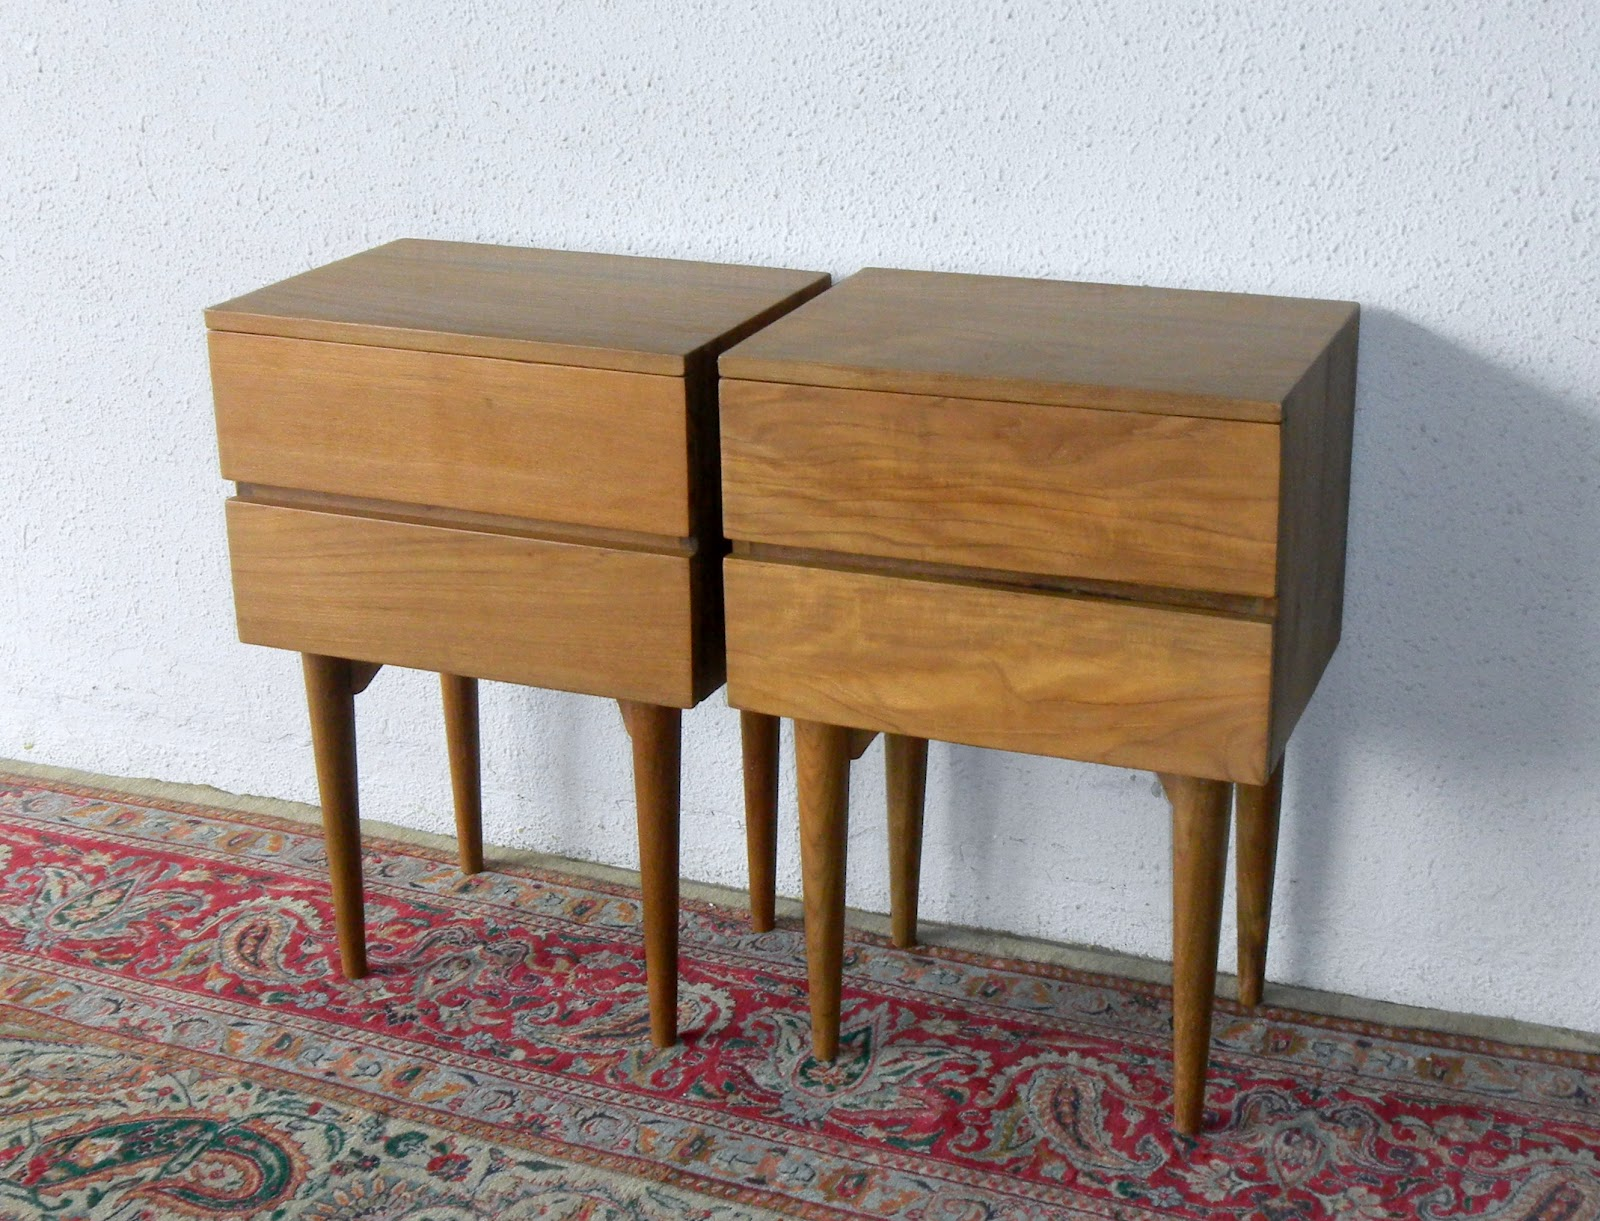 Vintage bedside table ideas - Mid Century Modern Bedside Cabinets Vintage And Fine Reproductions